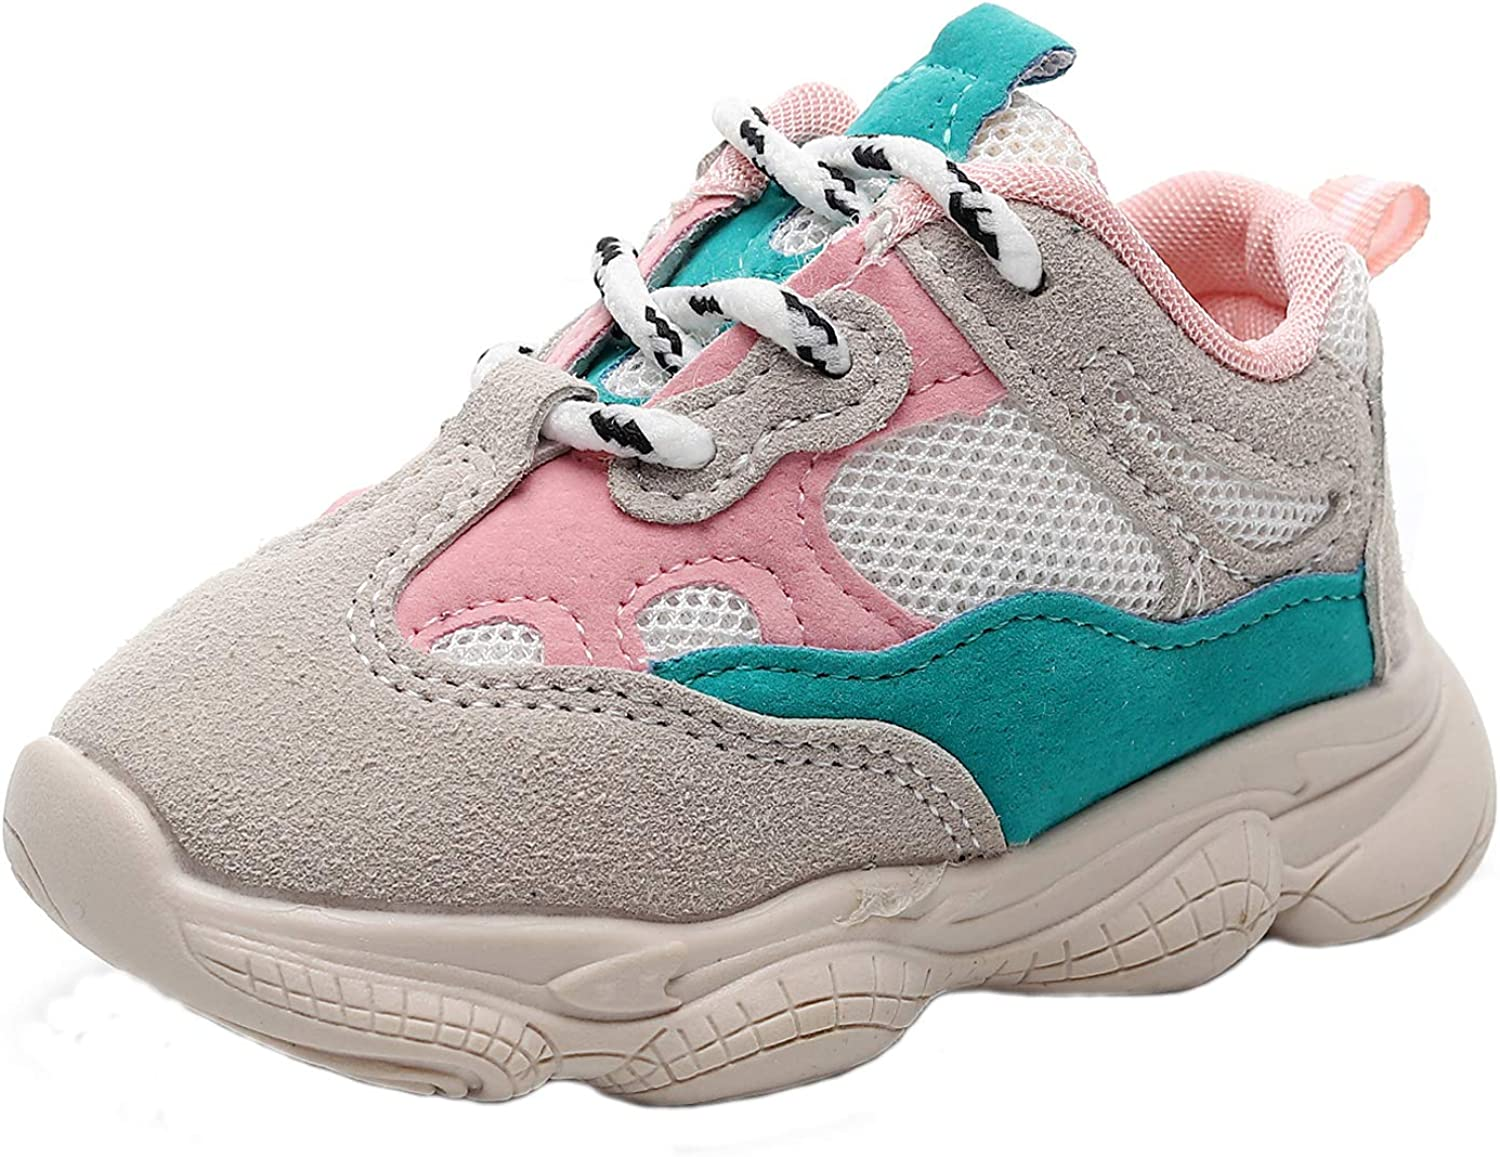 Kids Boys Girls Child Casual Sneakers Sports Shoes Running Shoes